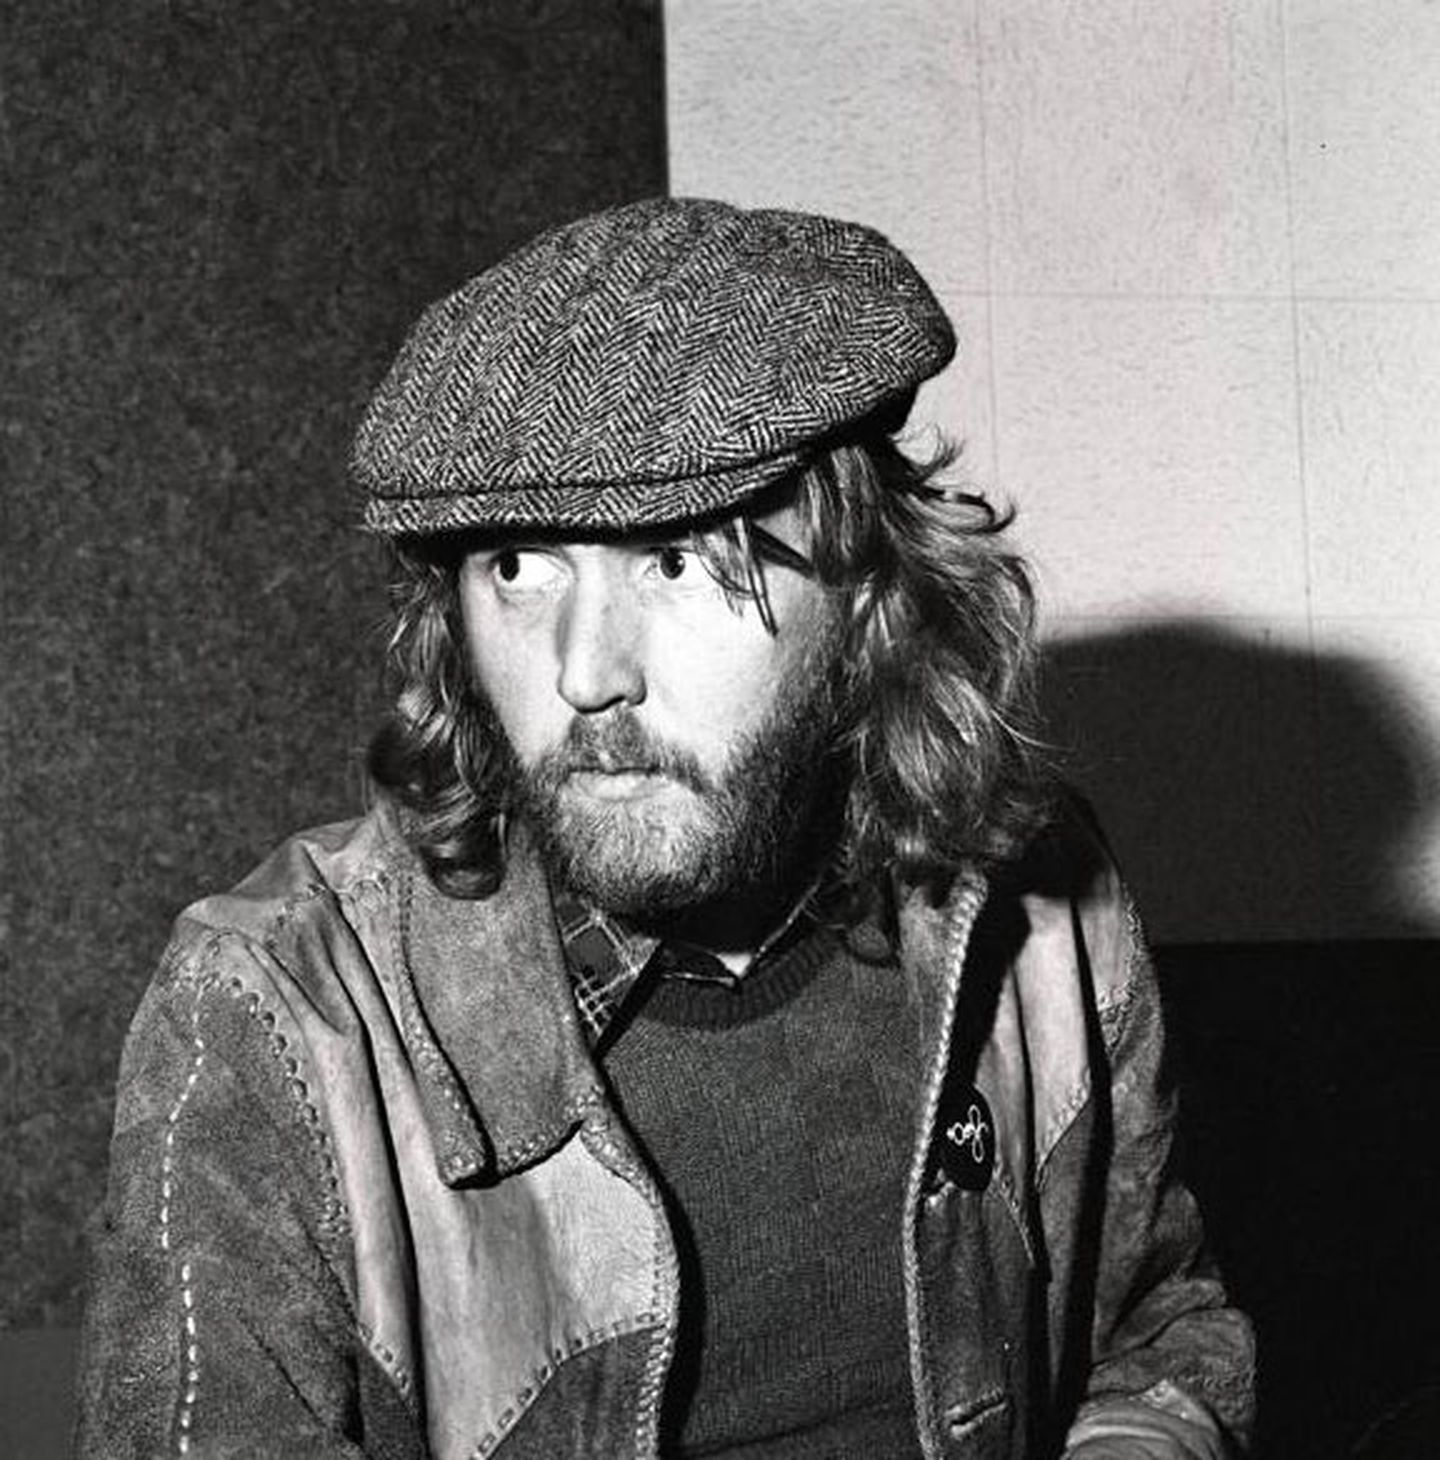 Harry Nilsson Gets Star Treatment In New Set Book The Boston Globe